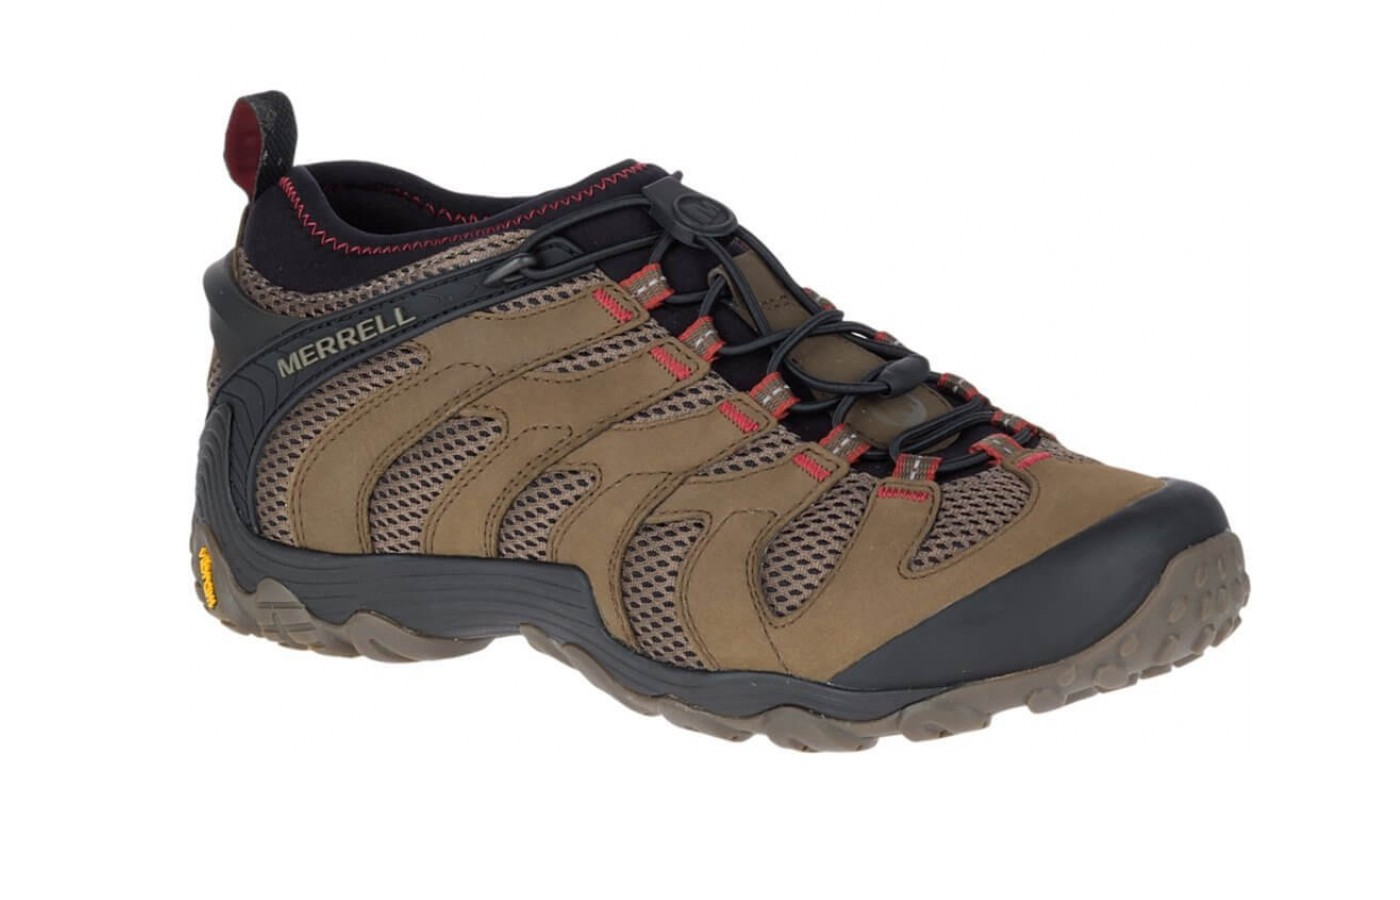 The Chameleon 7 Stretch is a durable trail hiking shoe.